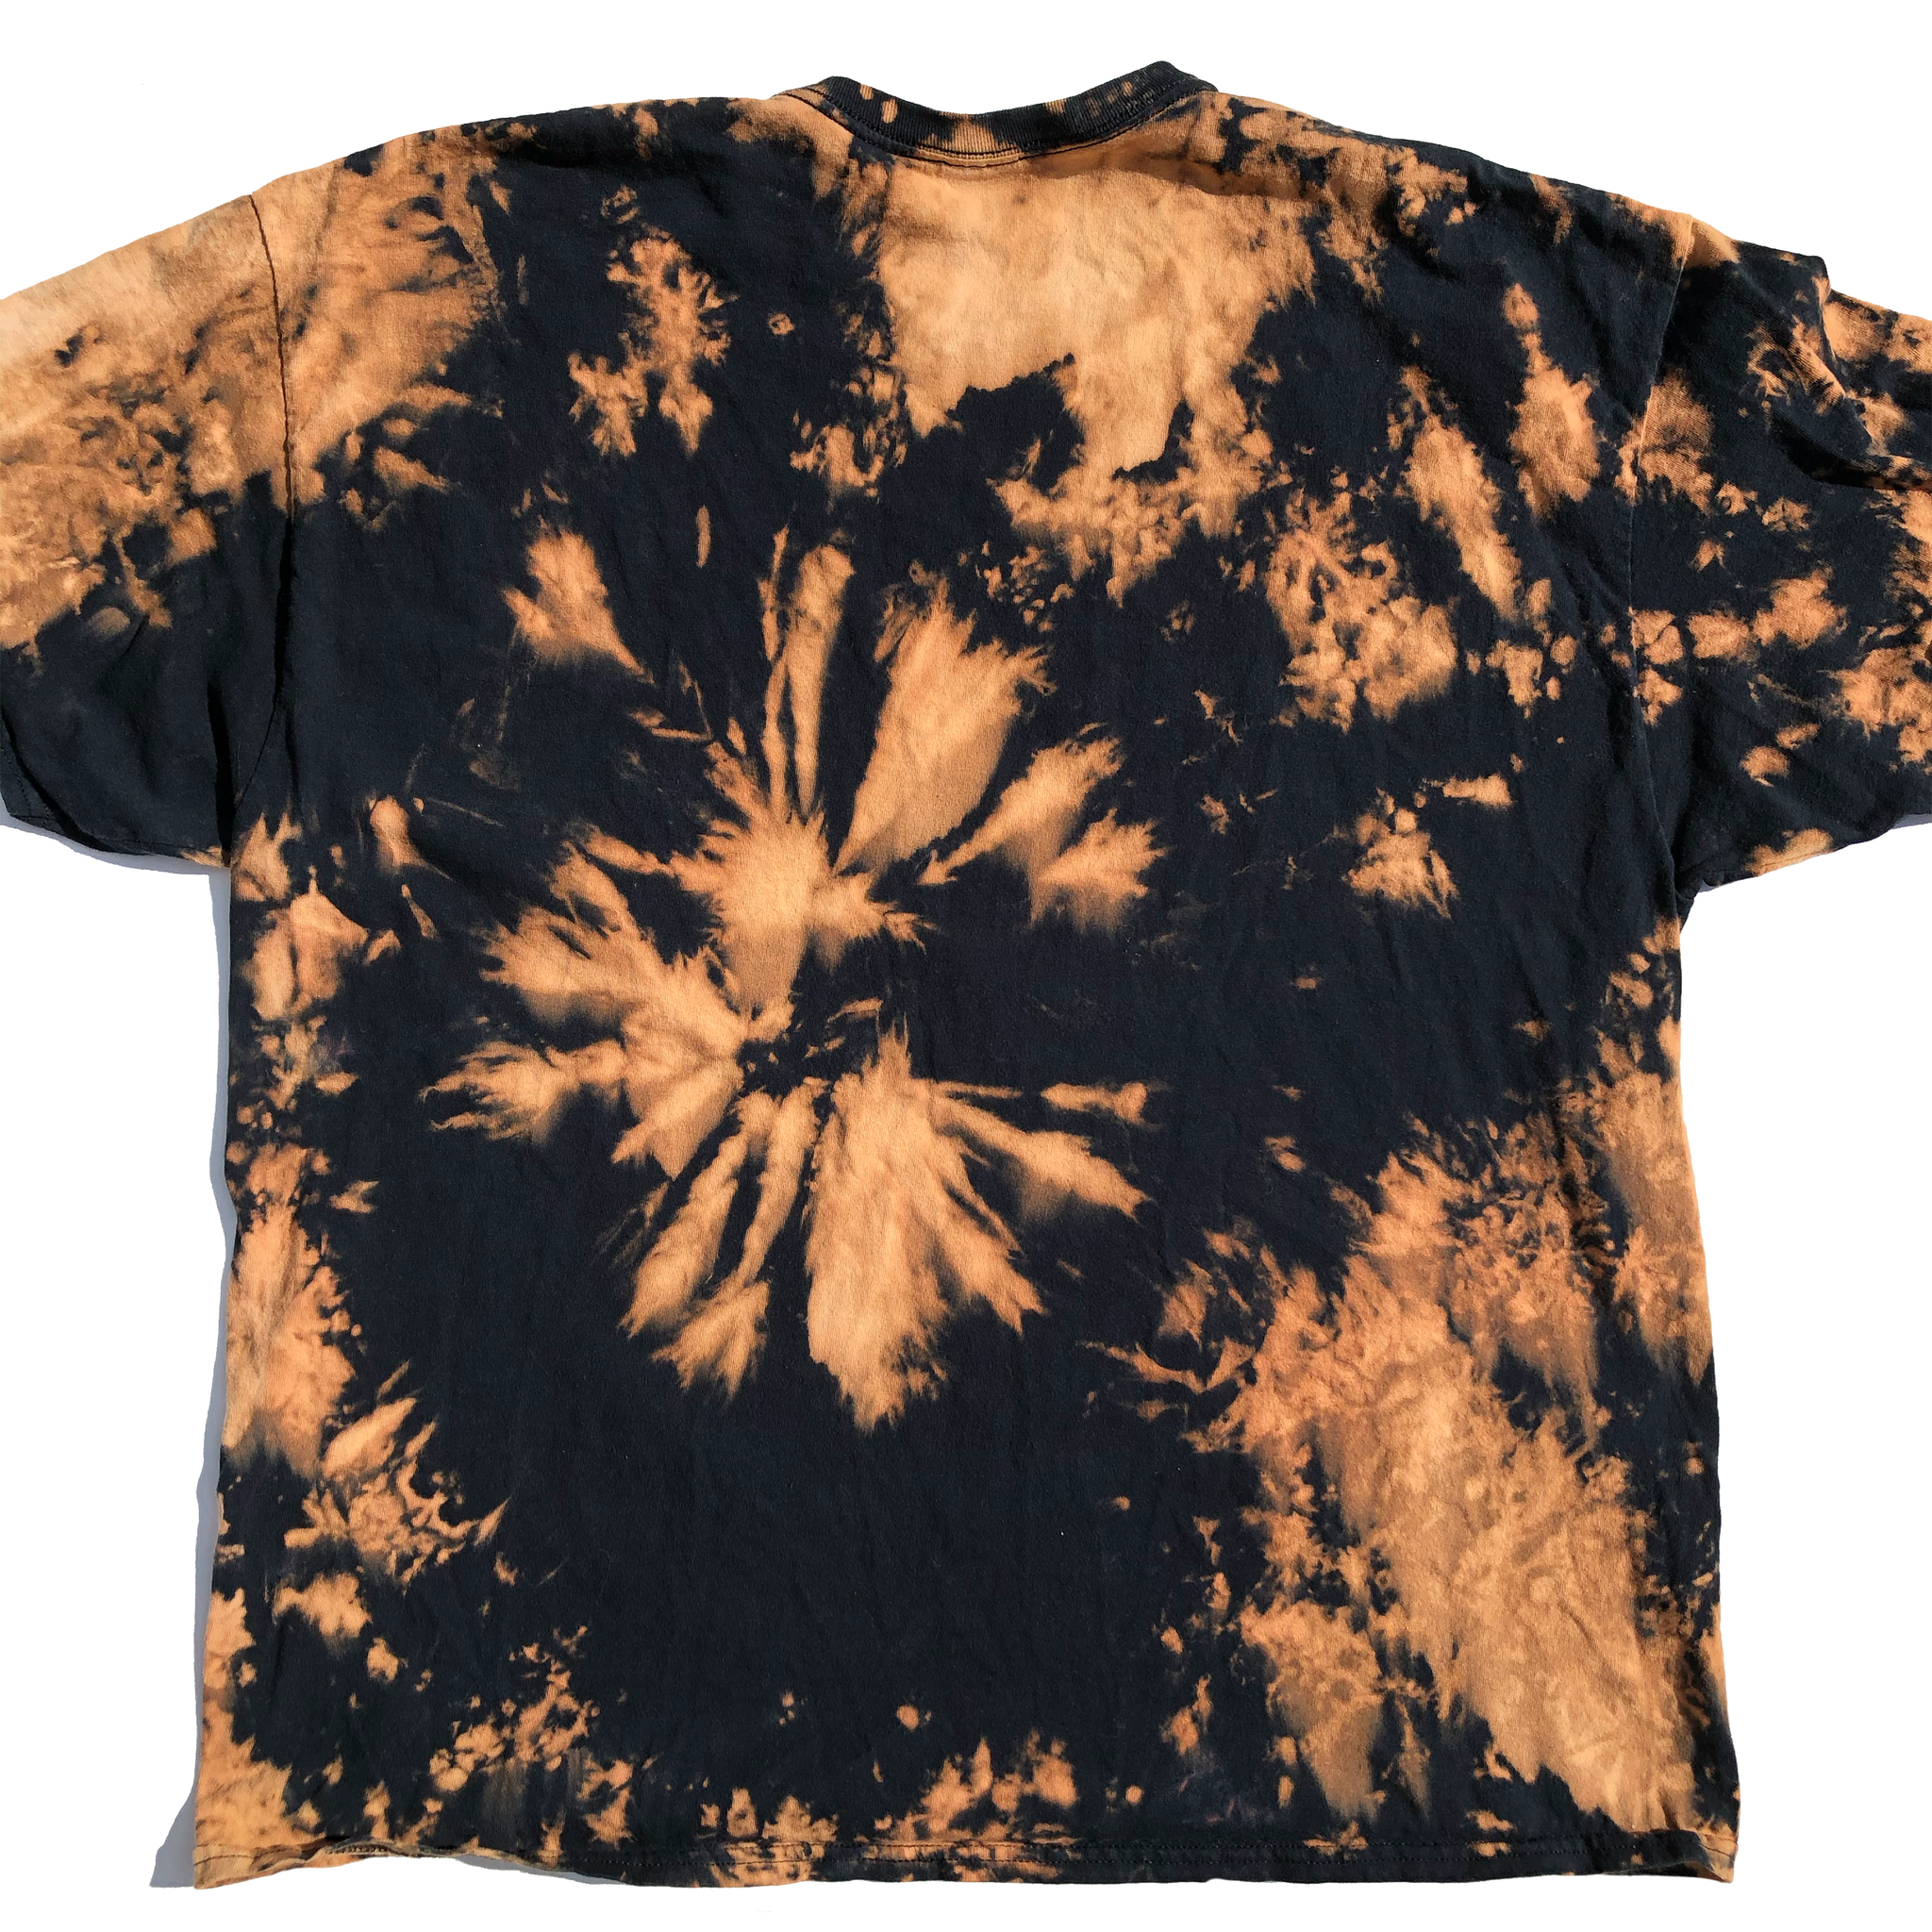 Acid wash ohio state shirt